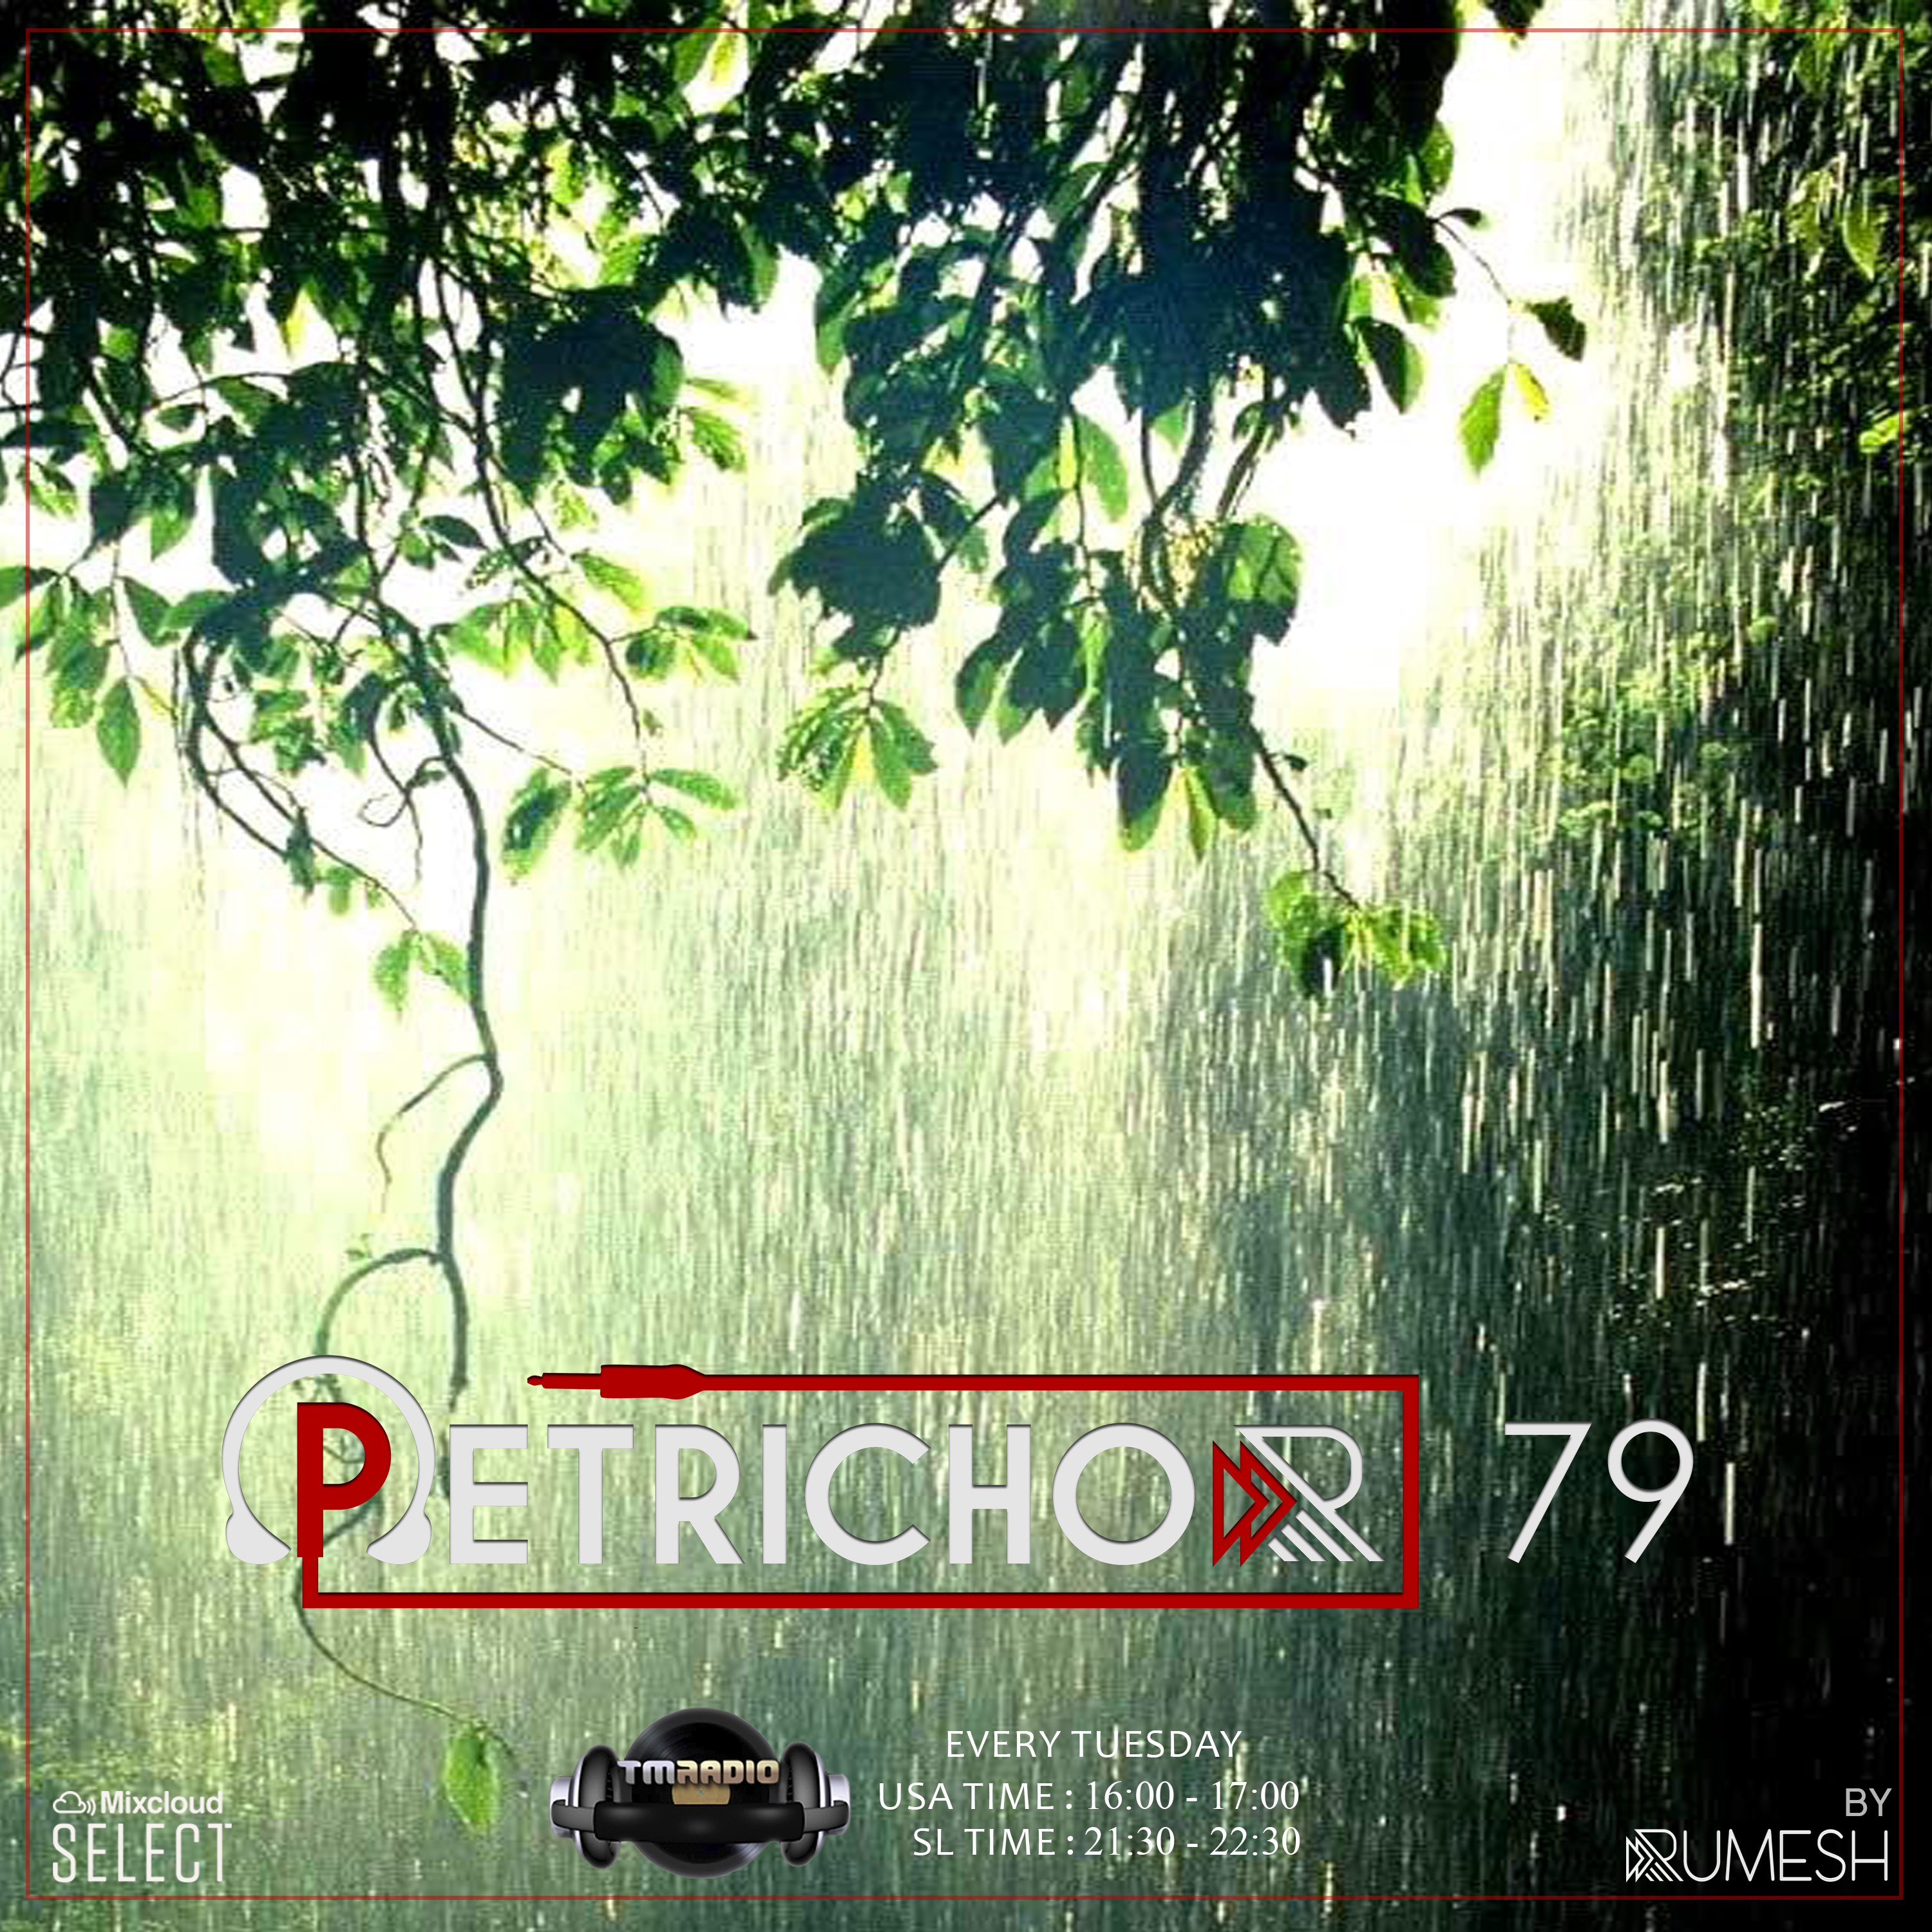 Petrichor :: Petrichor 79 by Rumesh (aired on May 12th, 2020) banner logo